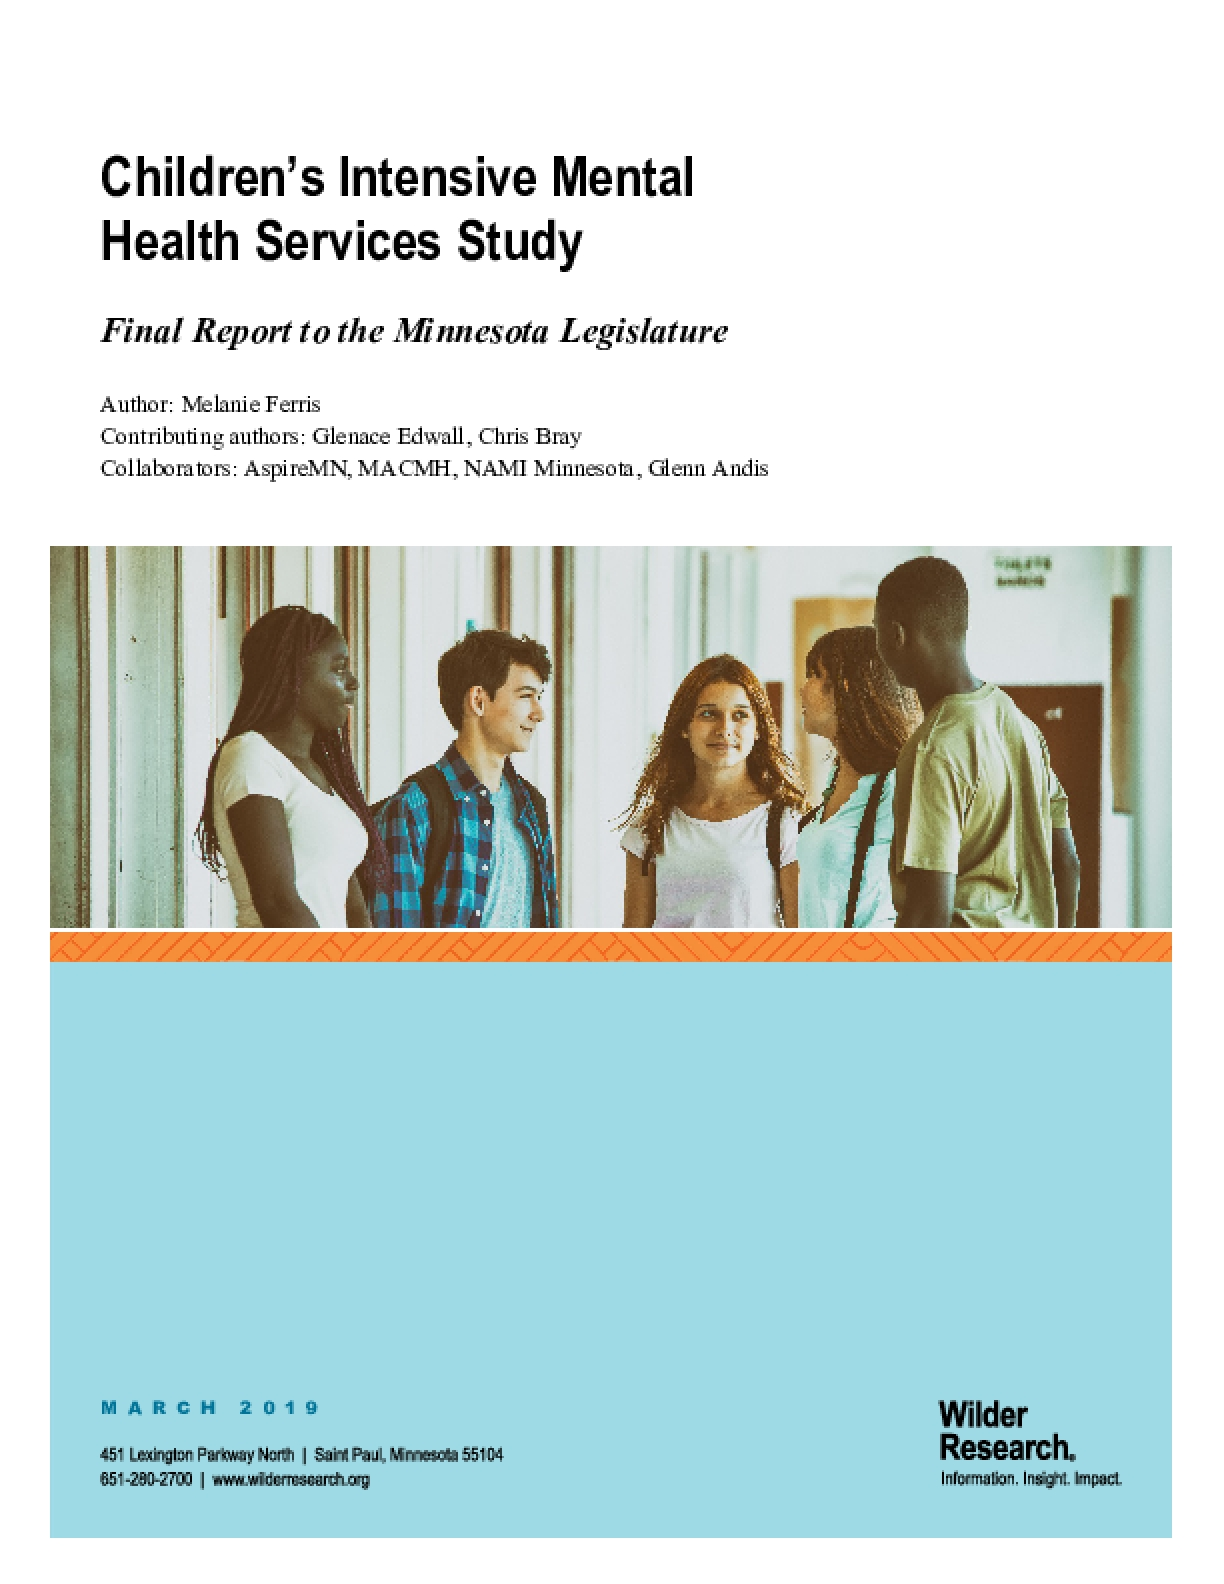 Children's Intensive Mental Health Services Study: Final Report to the Minnesota Legislature